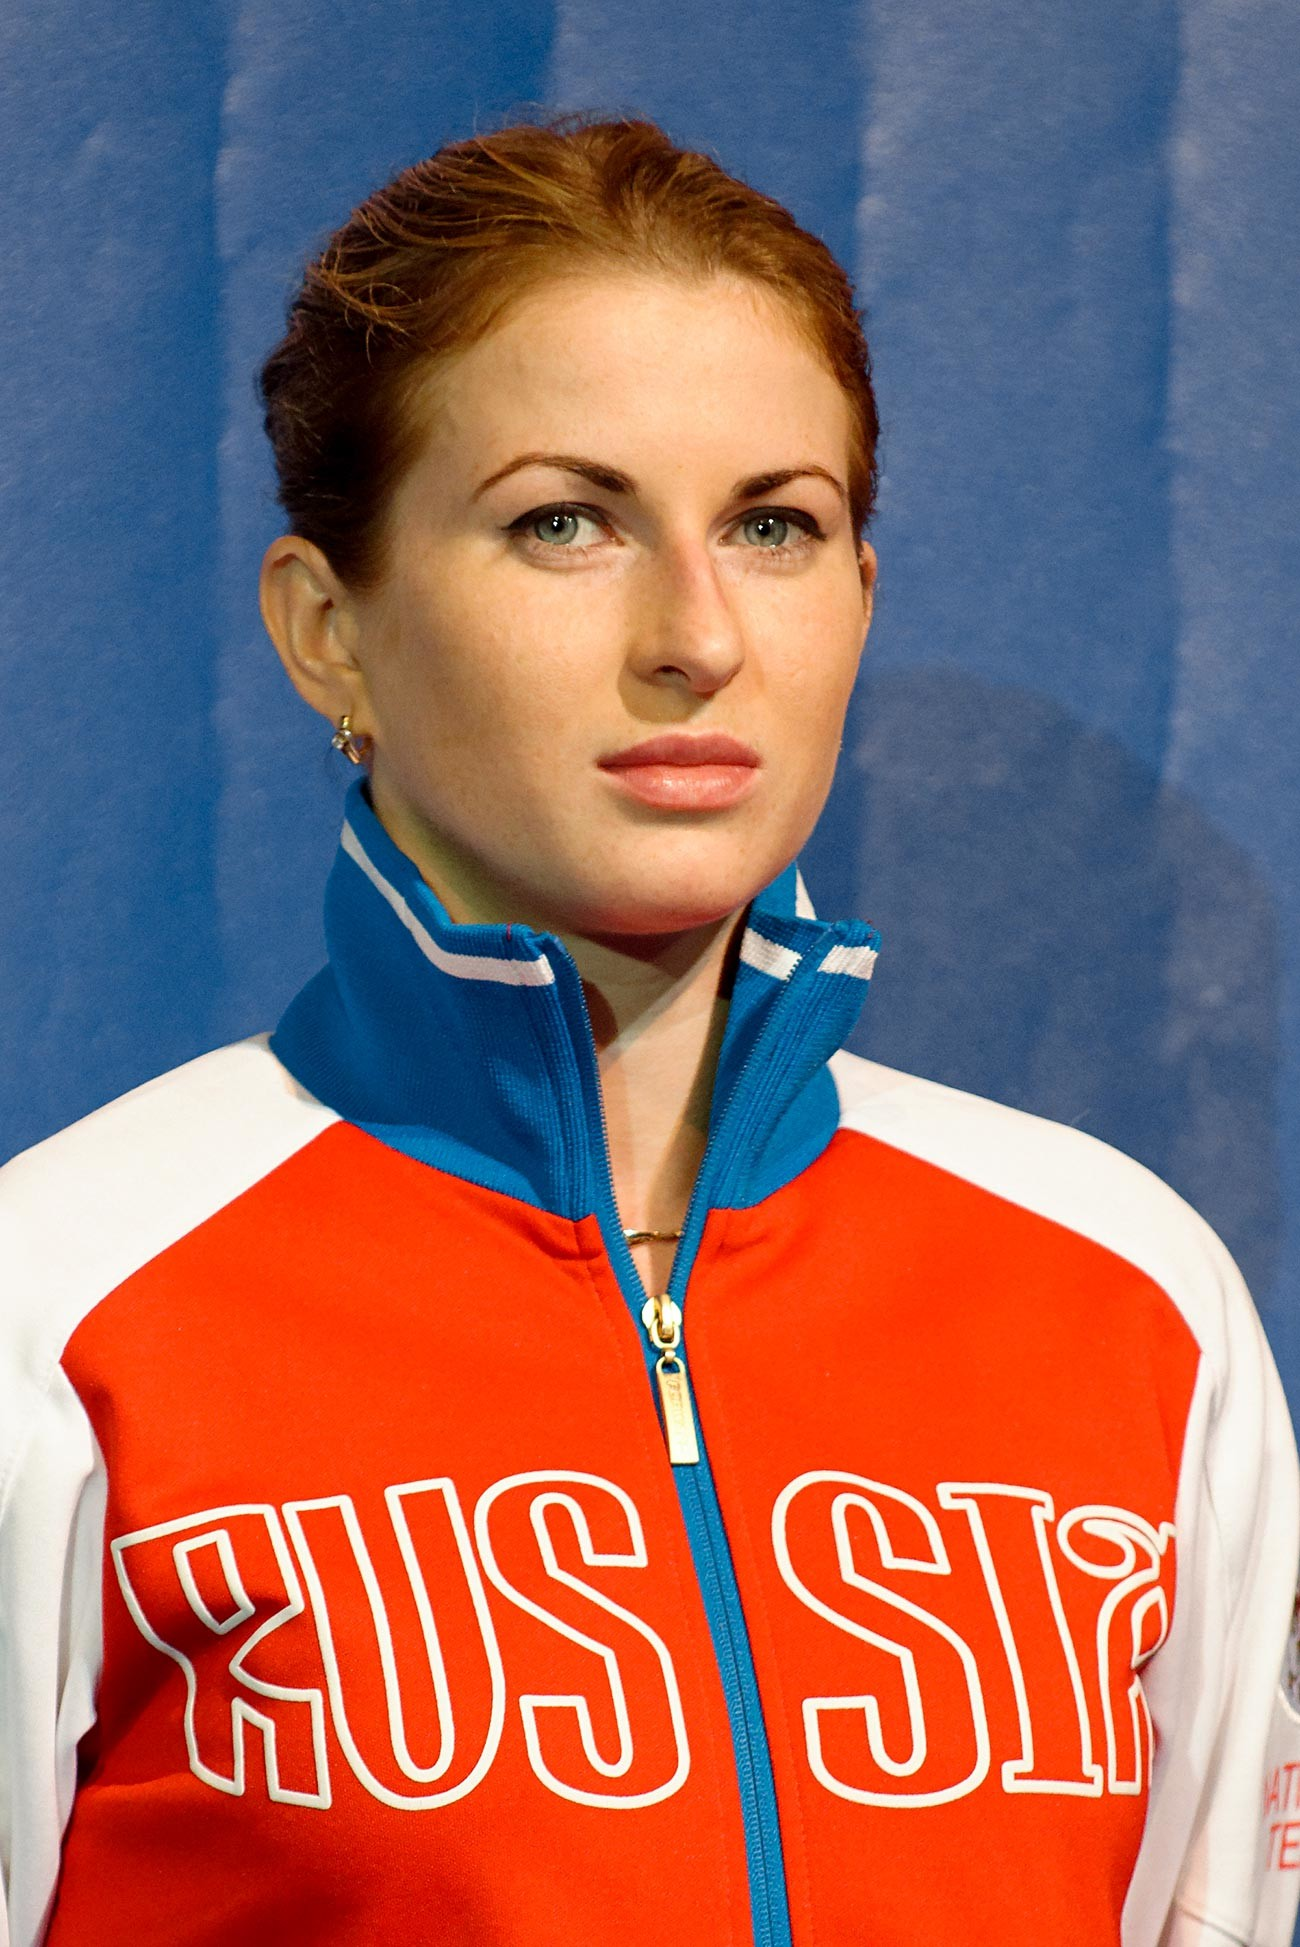 Russia's Inna Deriglazova stands on the women's foil podium of the 2013 World Fencing Championships 2013 at Syma Hall in Budapest, 10 August 2013